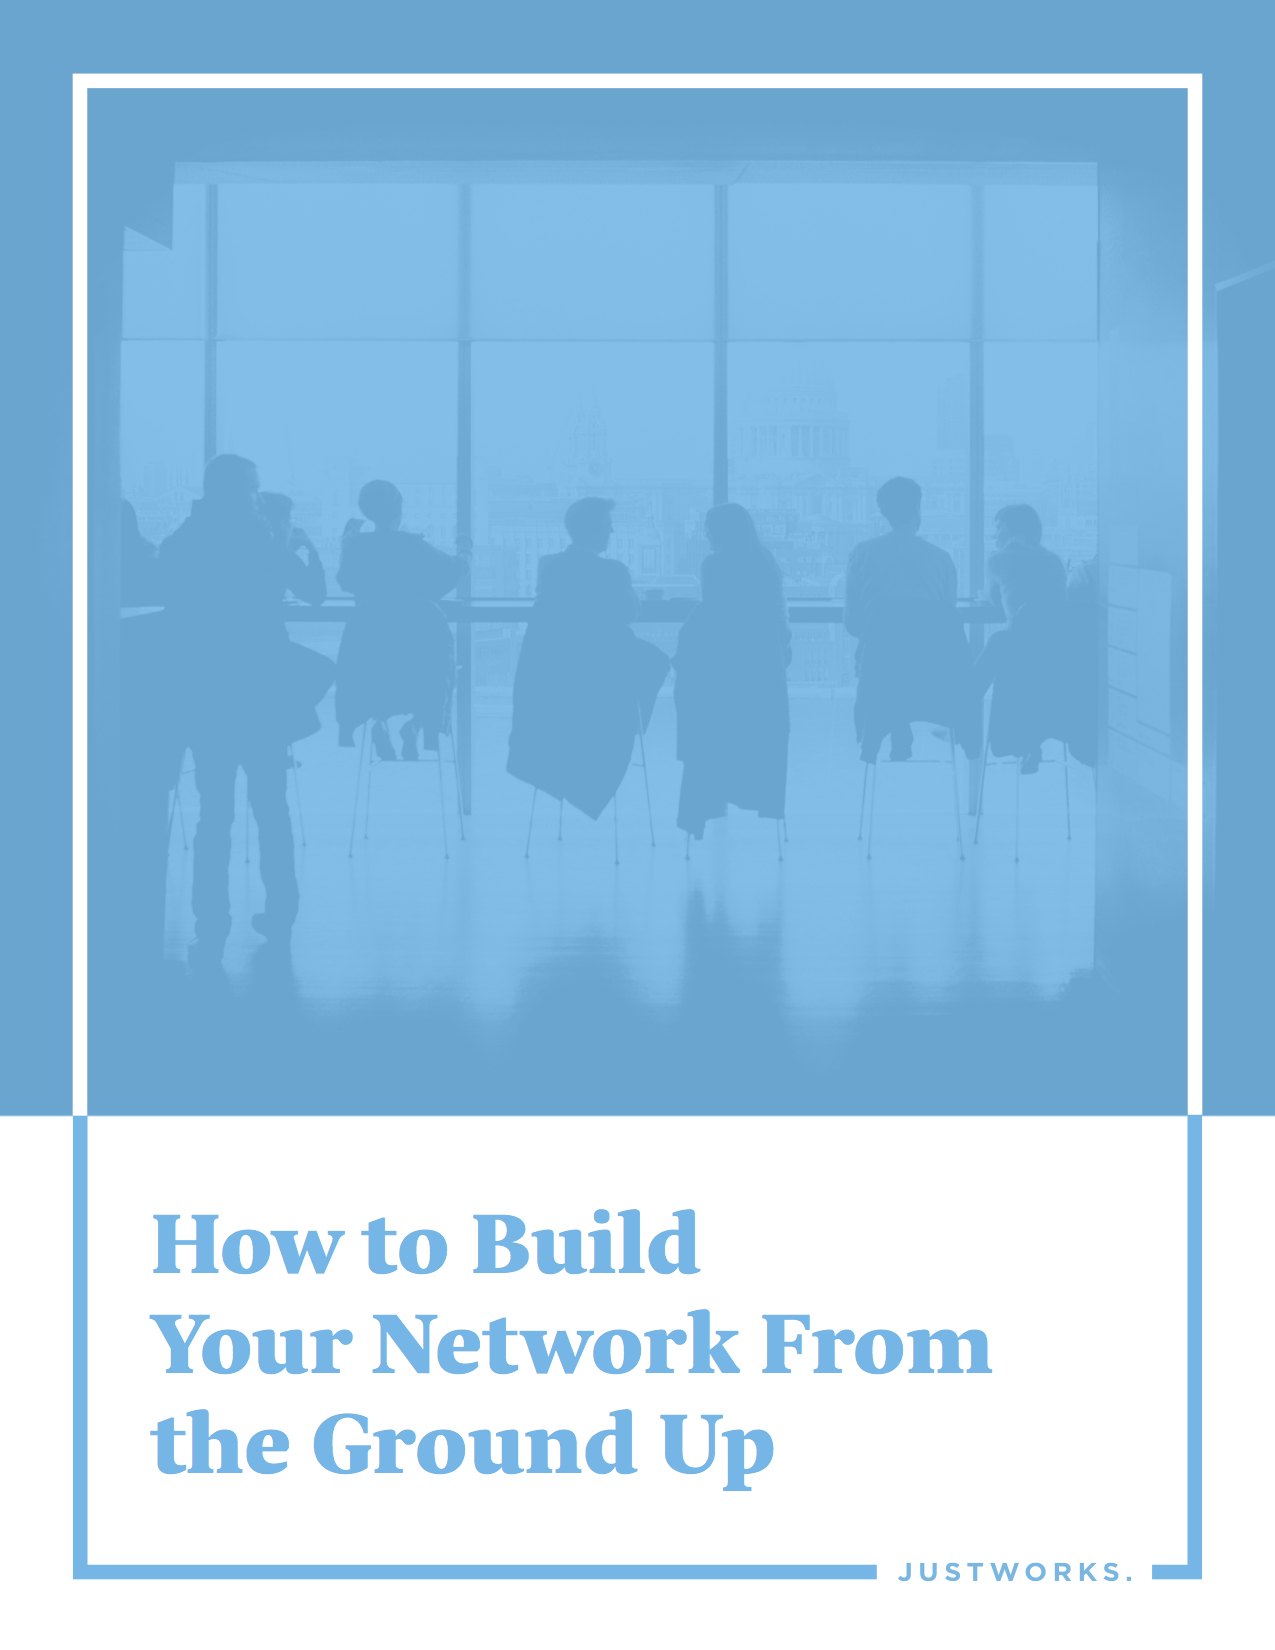 Sometimes, professional networking sucks. - That's why I got concrete tips on how to make the experience better for everyone.For this eBook, I interviewed several contributors, such as Kathryn Minshew, CEO of the Muse, to get advice and wisdom on building a network.I've provided a seven-page excerpt of the 22-page piece.